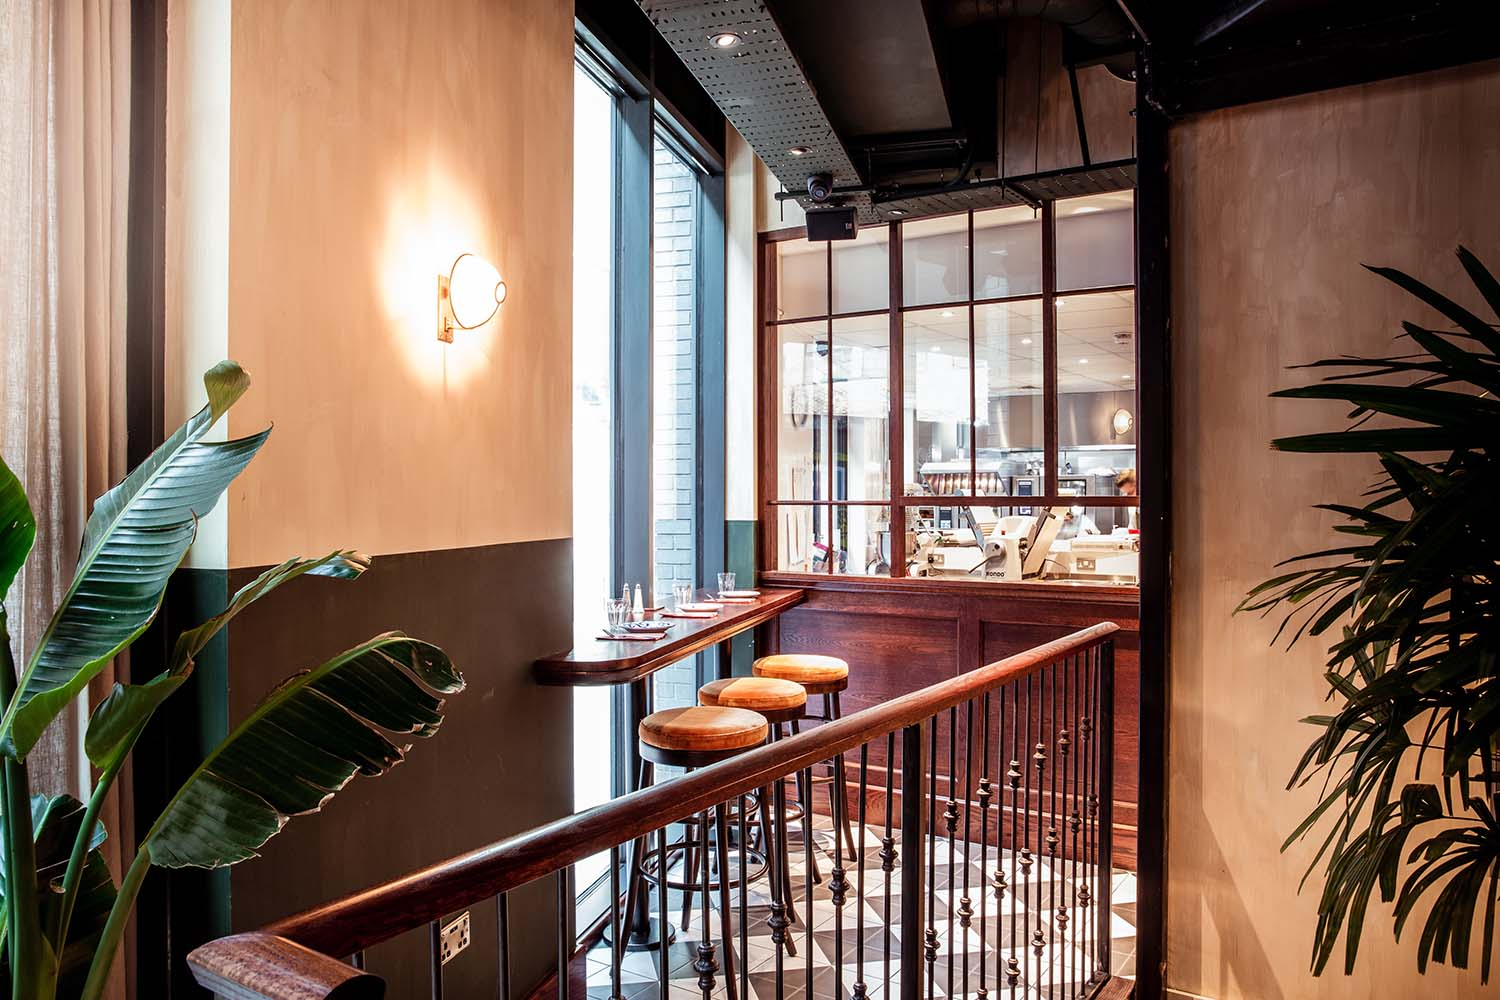 Casa do Frango Shoreditch, Piri Piri Chicken Restaurant Designed by A-nrd studio